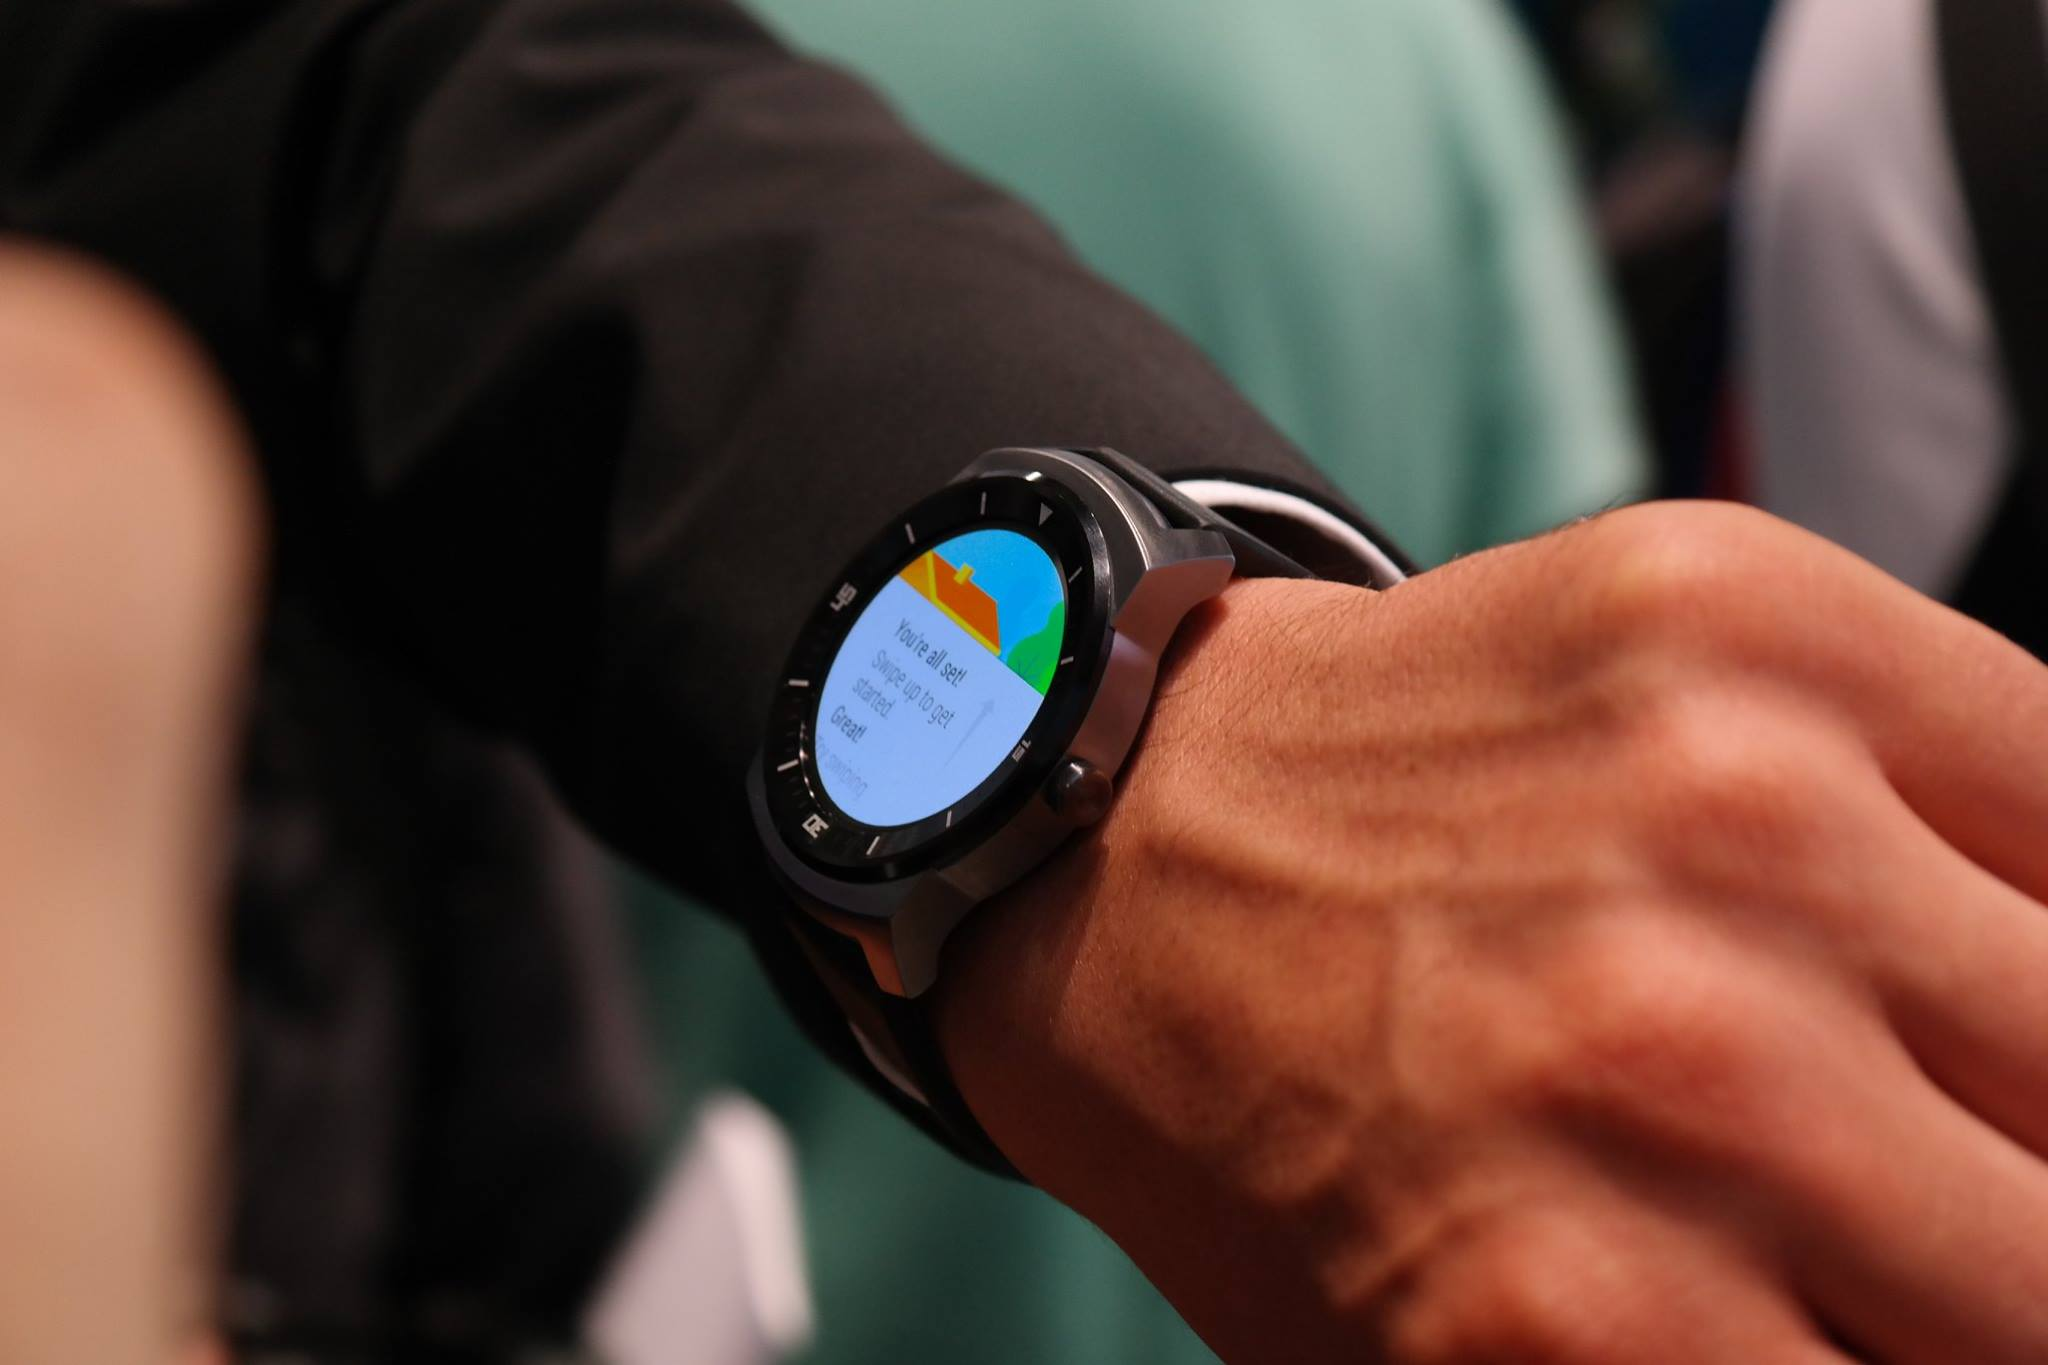 Am testat LG G Watch R, poate cel mai bun smartwatch din 2014 [VIDEO Hands-on]